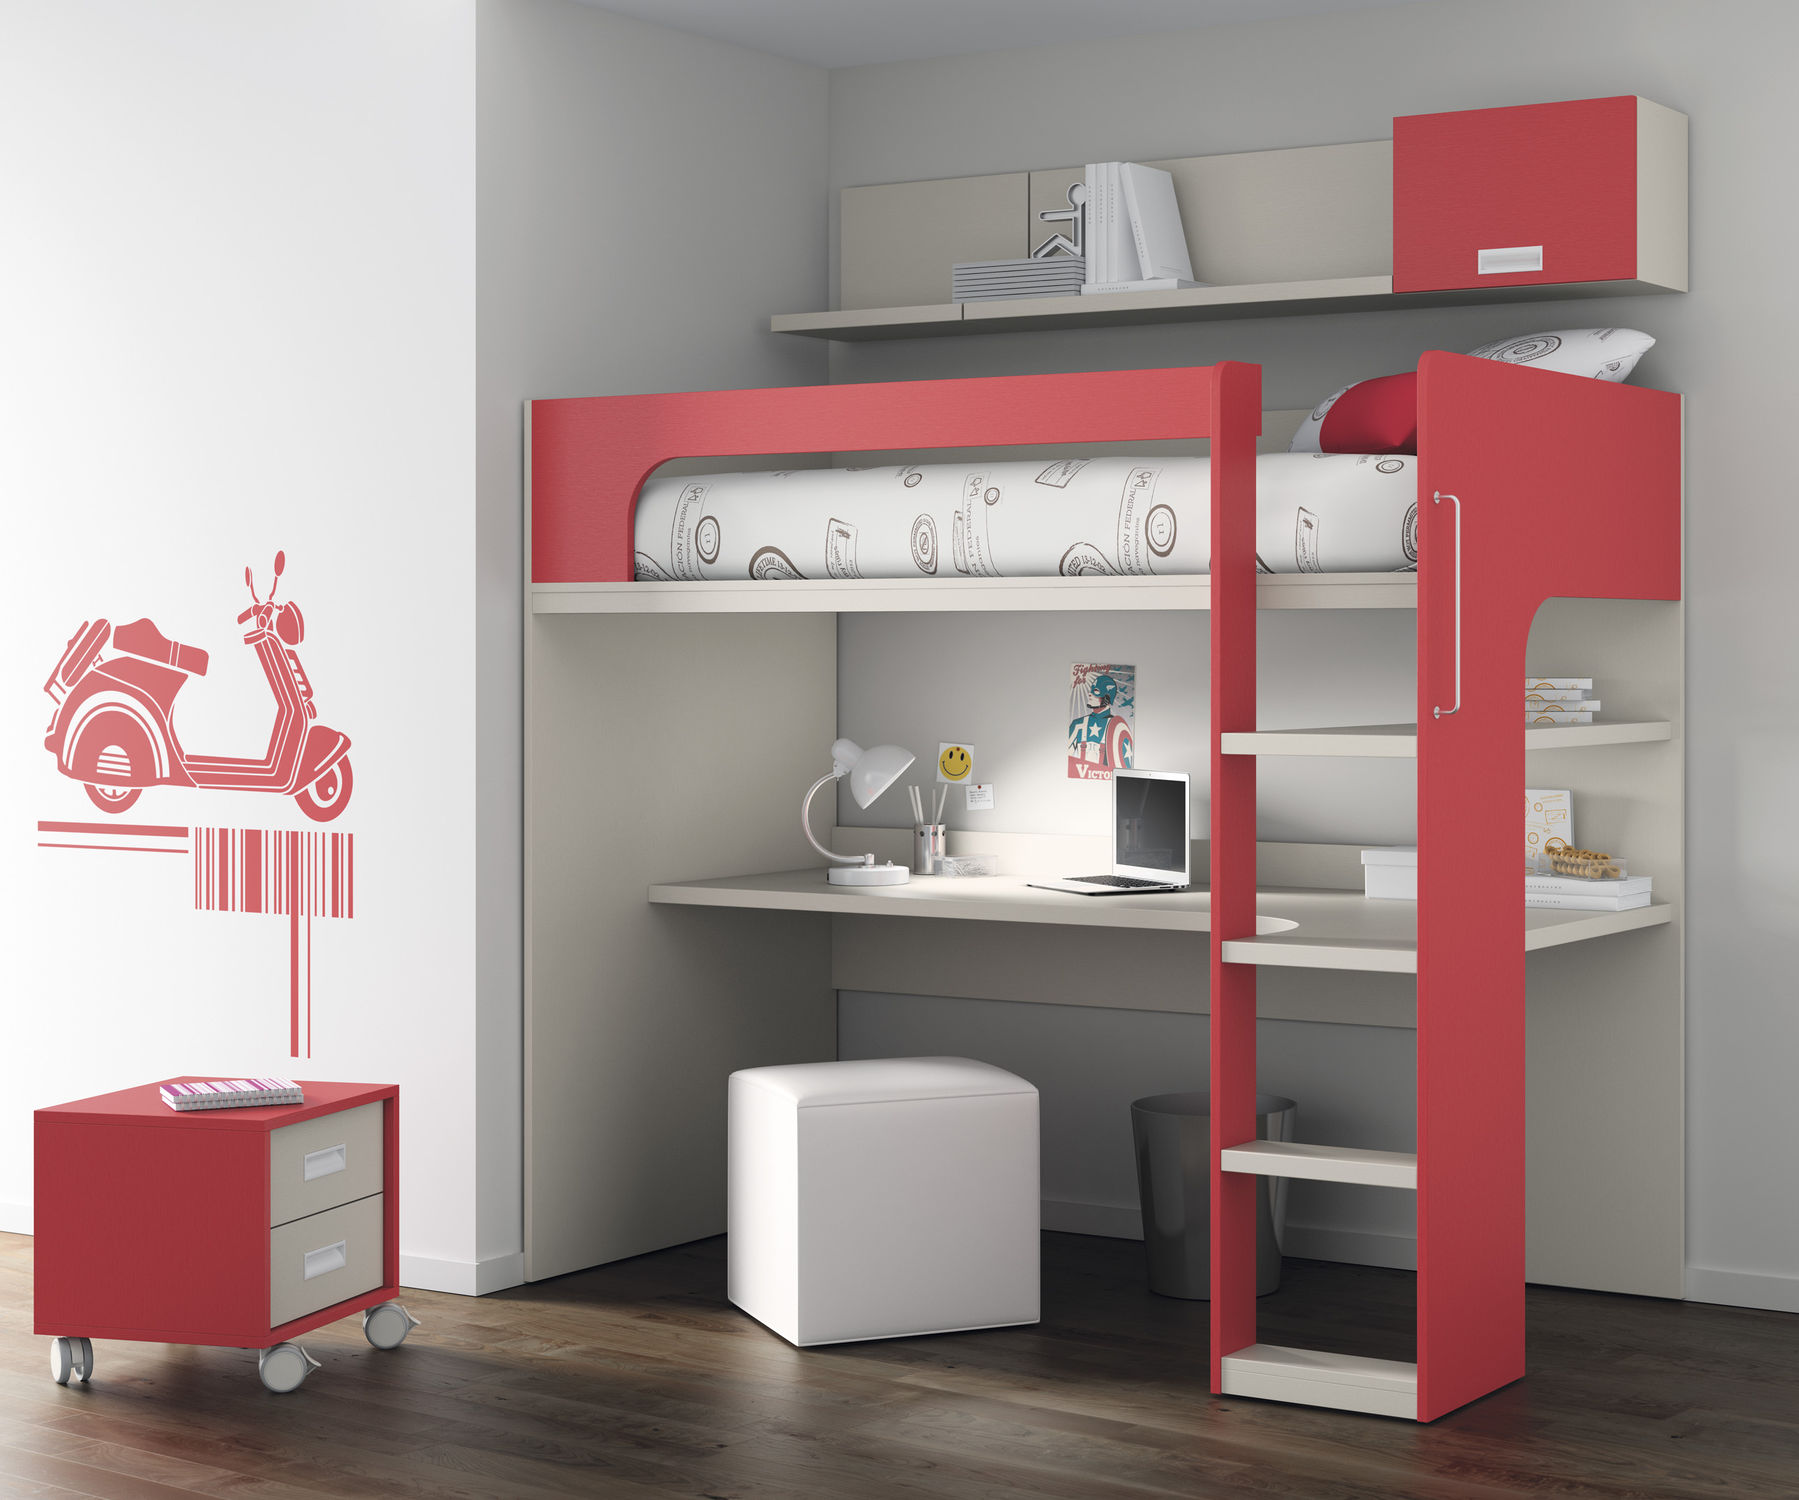 loft bed touch 69 ros 1 s a